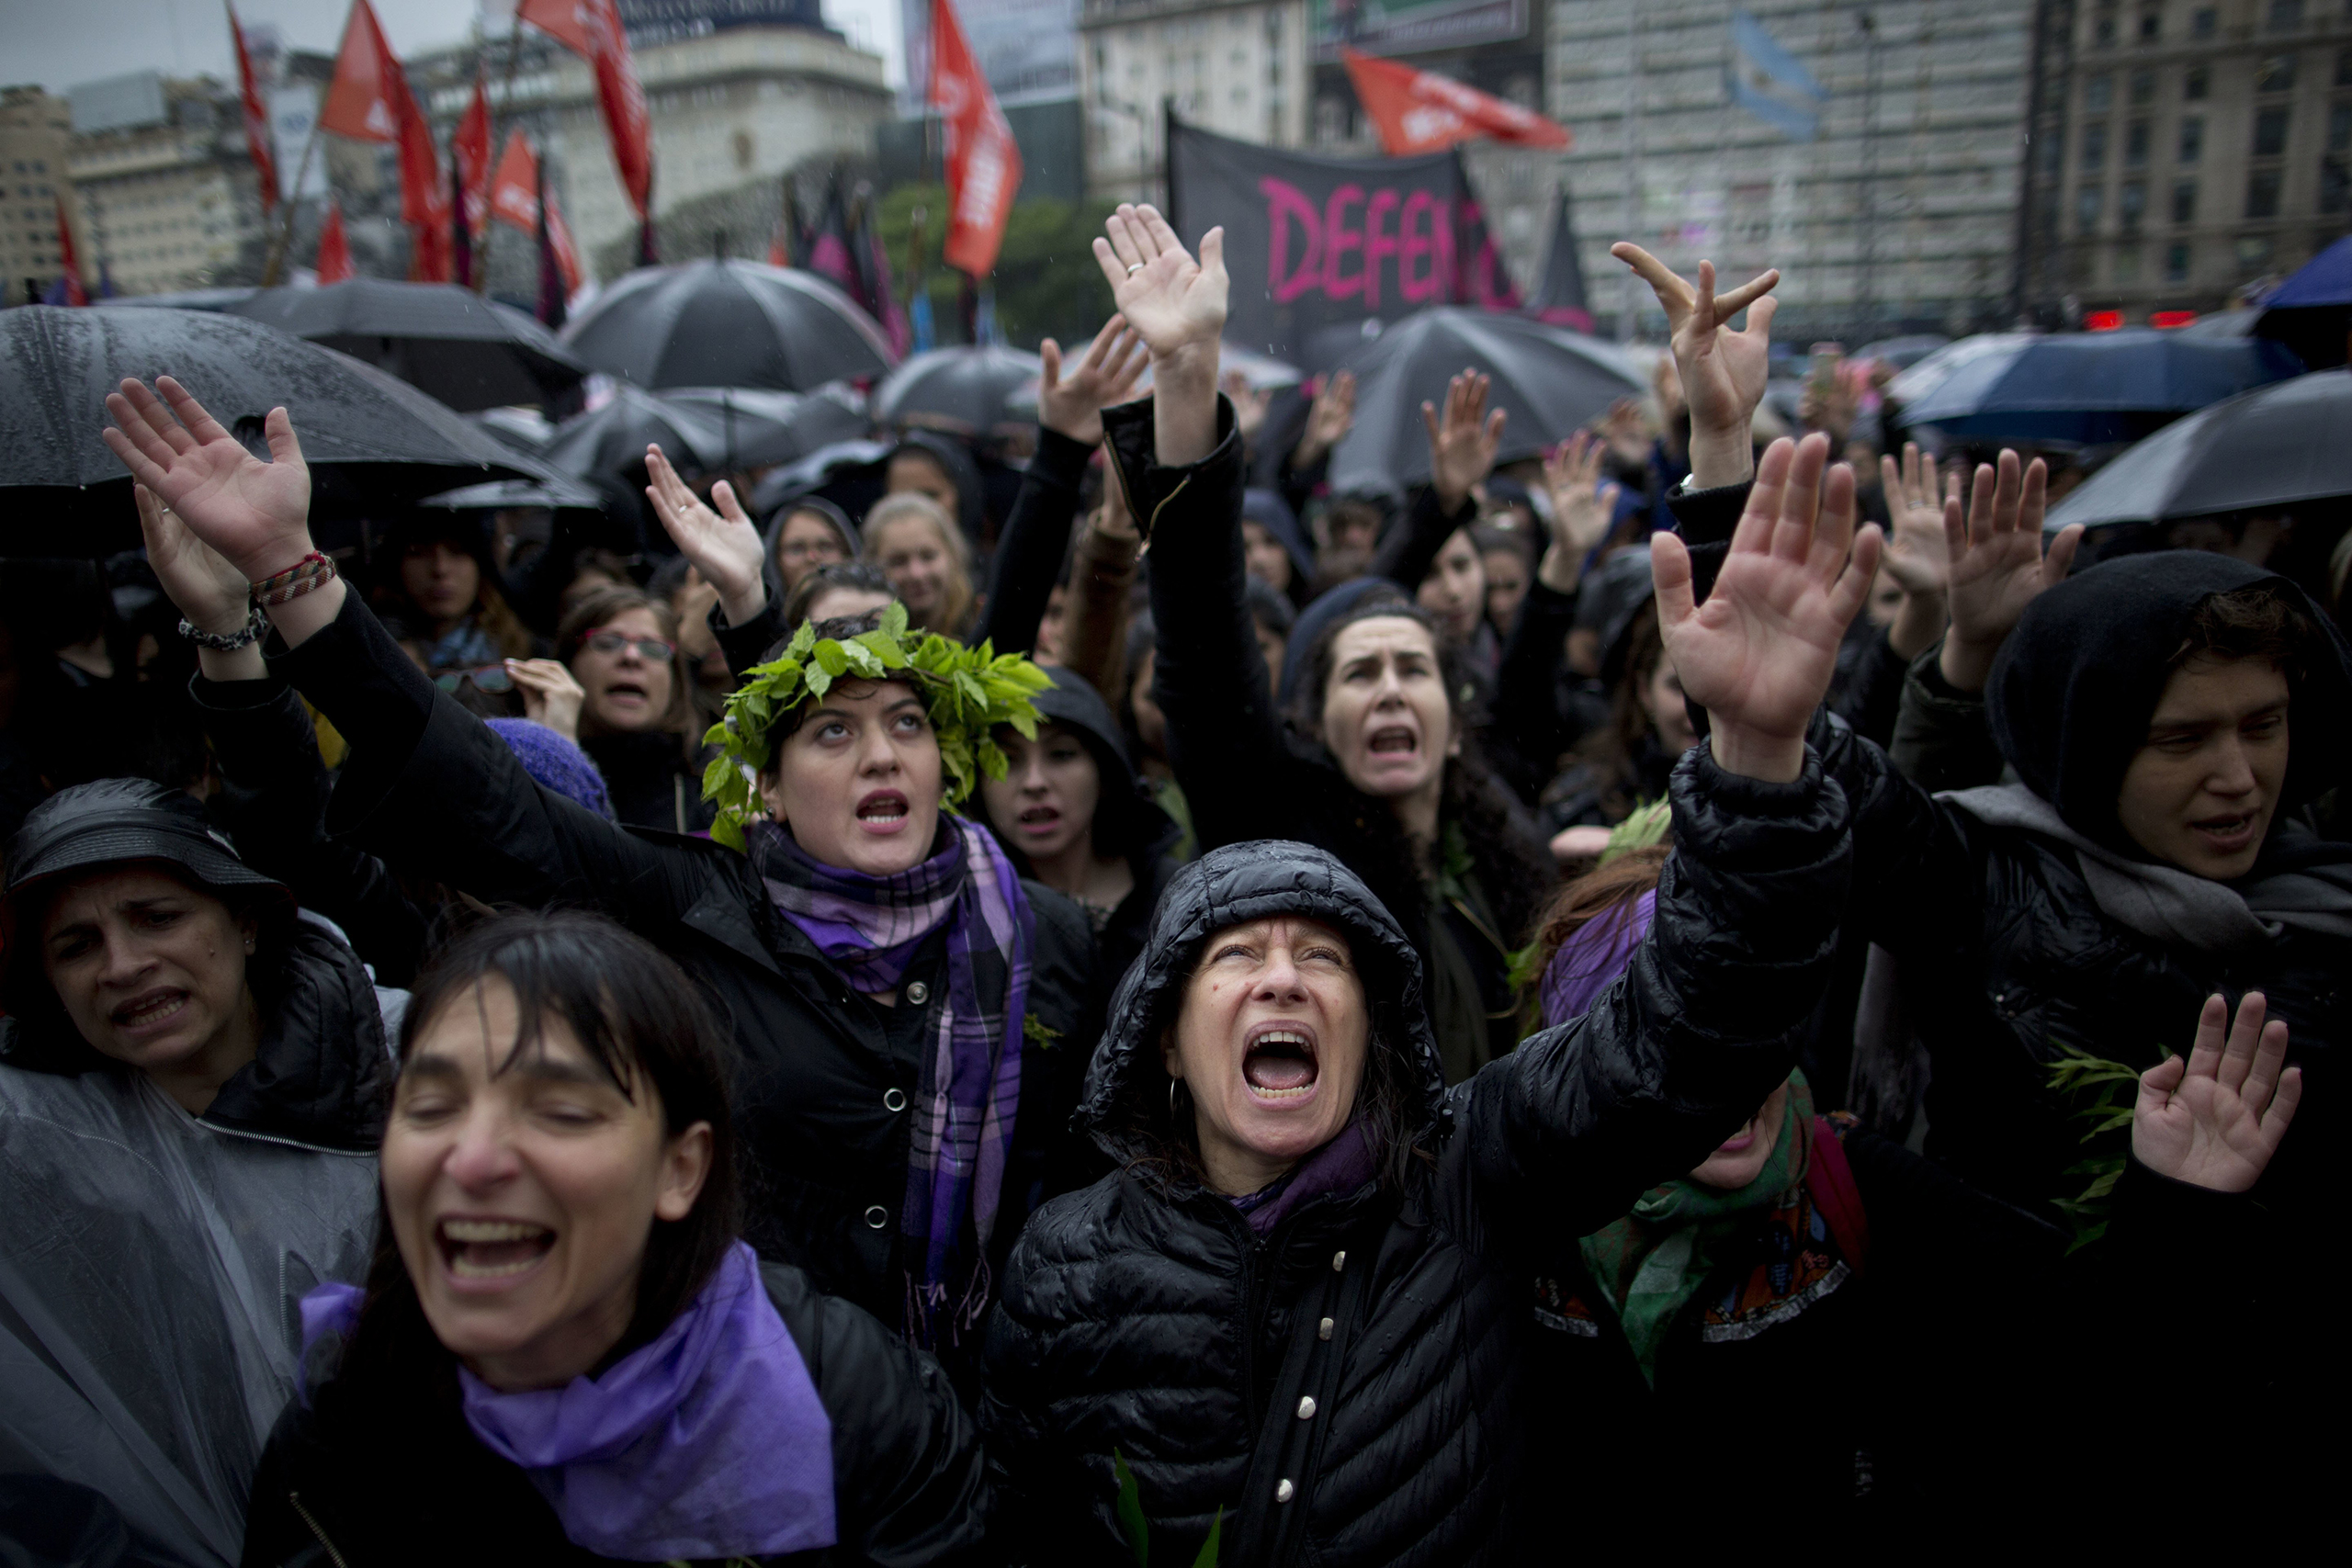 Women shout during a demonstrating against gender violence in Buenos Aires, Argentina, on Oct. 19, 2016.